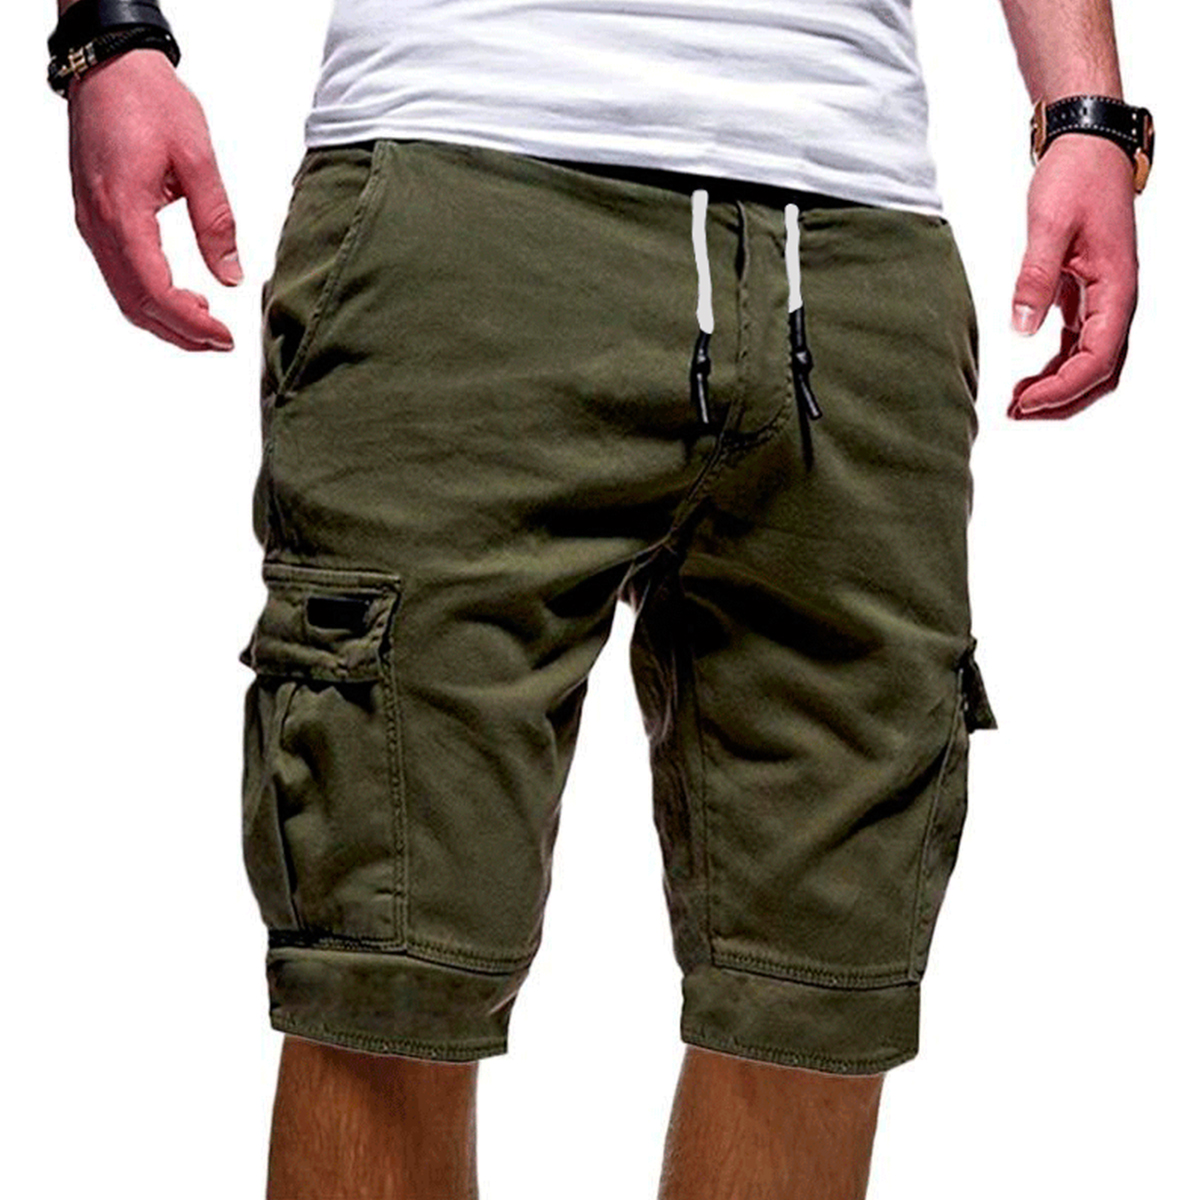 Hot-Selling Mens Shorts Fitness Casual Workout Brand  Pants  Quality Shorts Men's Multi-pocket Sports Shorts